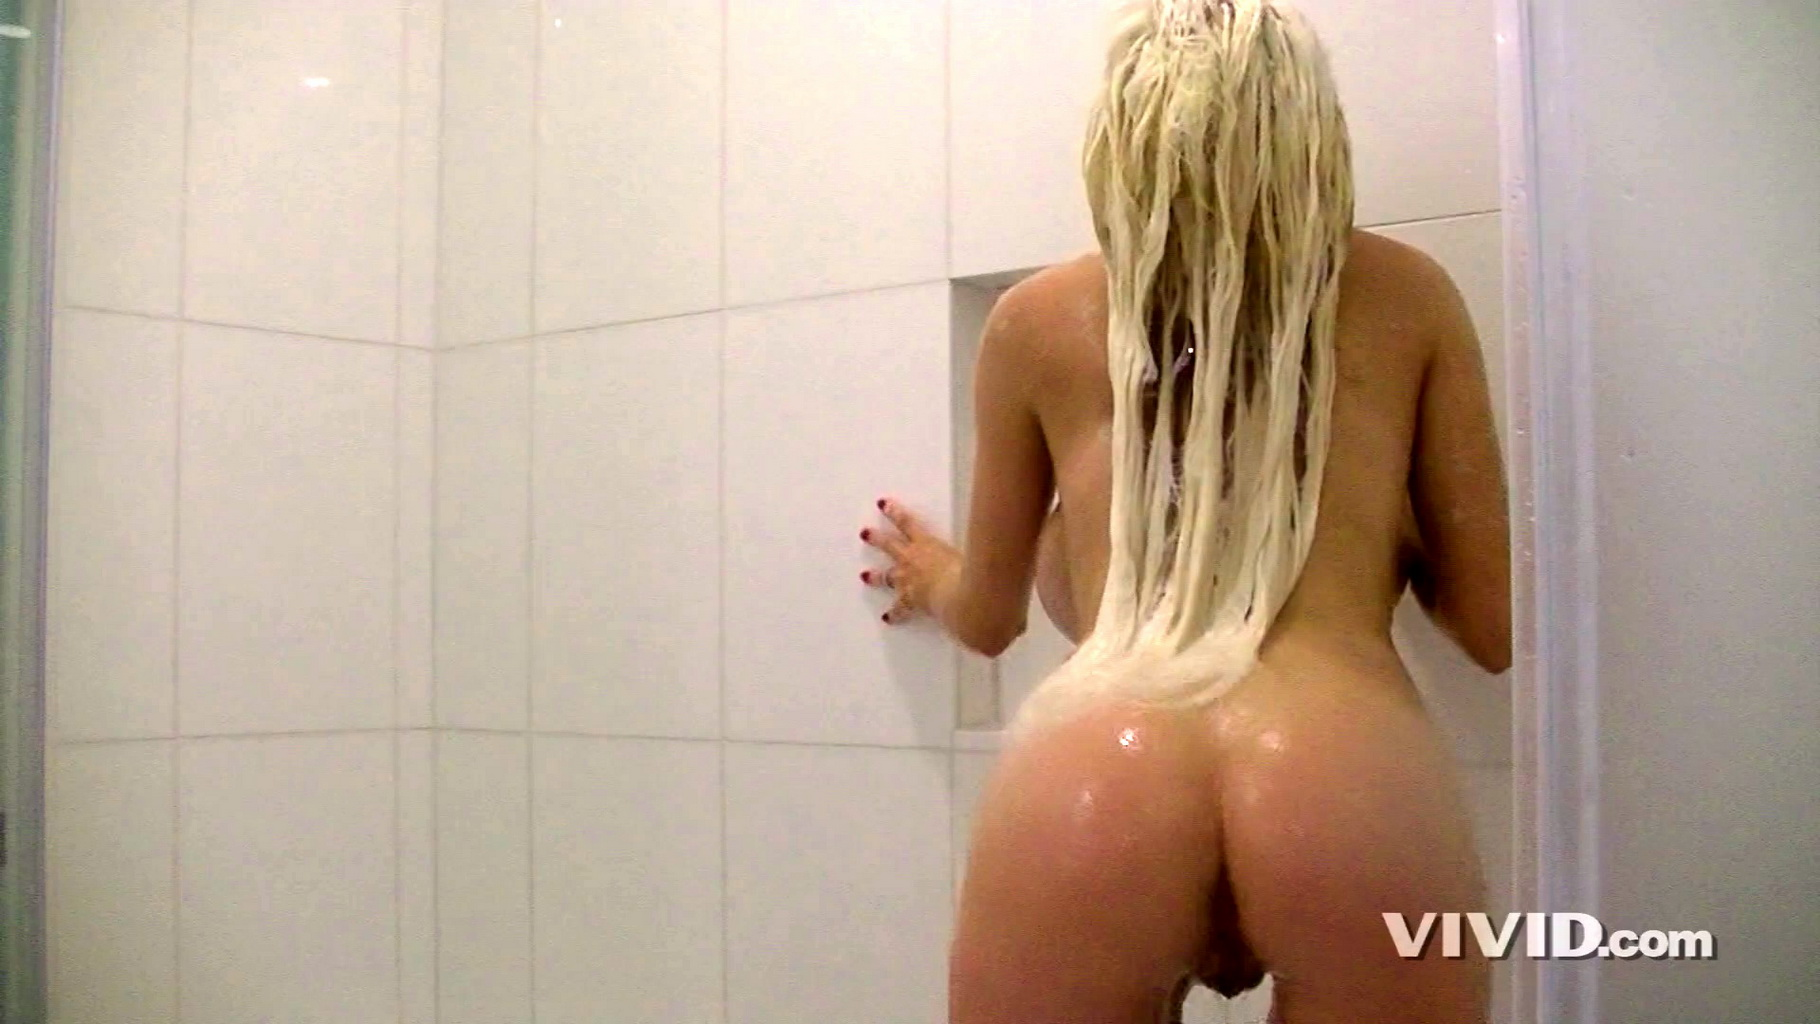 courtney stodden naked